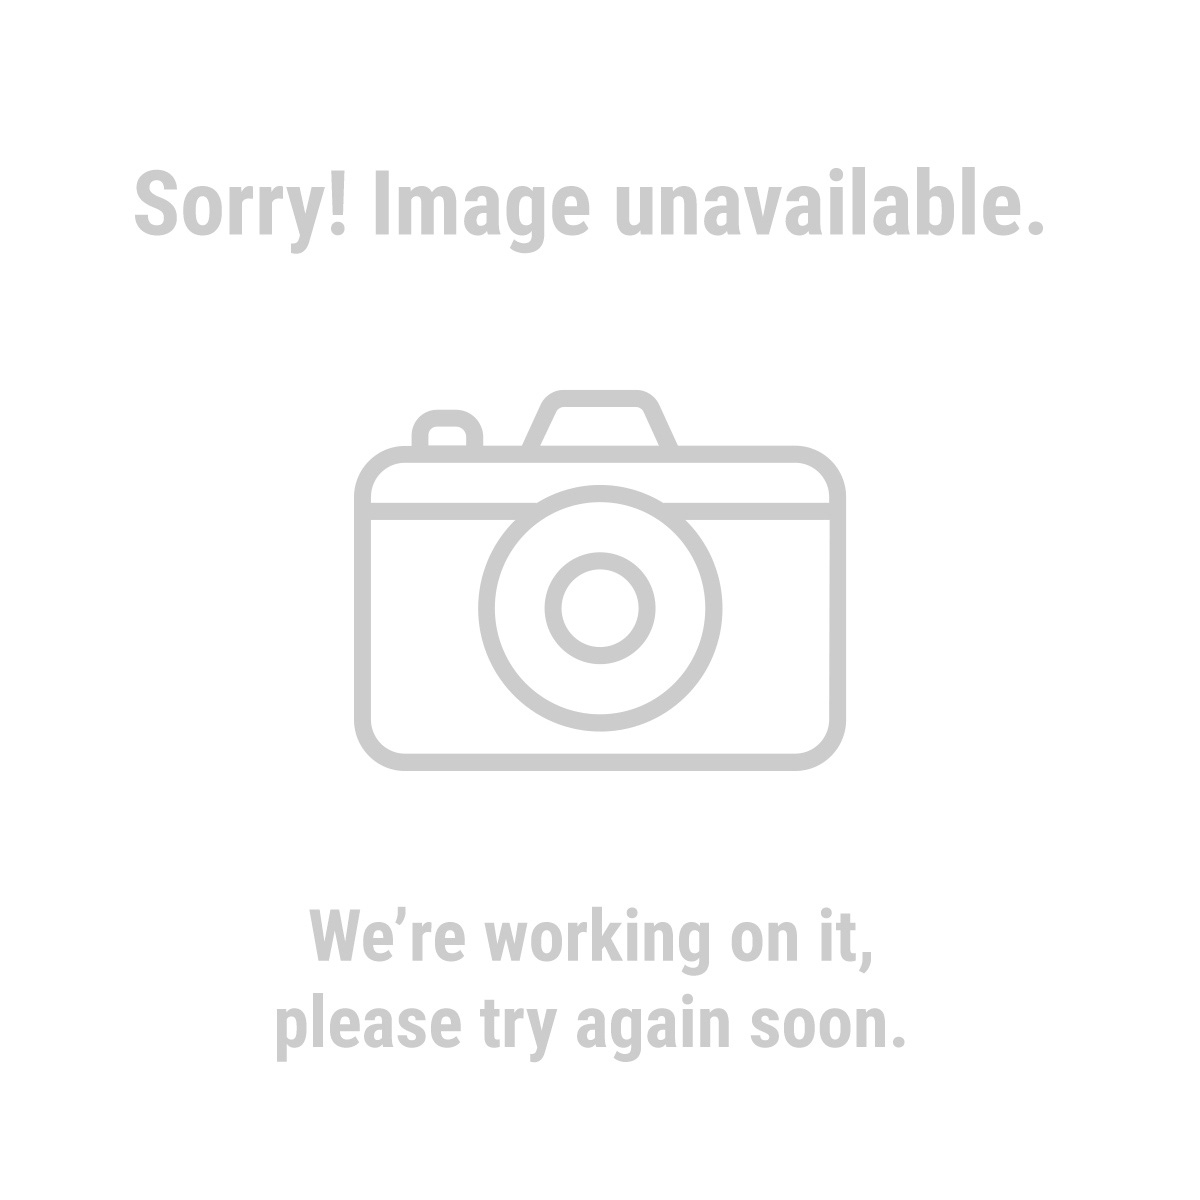 Central-Machinery 65345 5 Speed Bench Top Wood Lathe